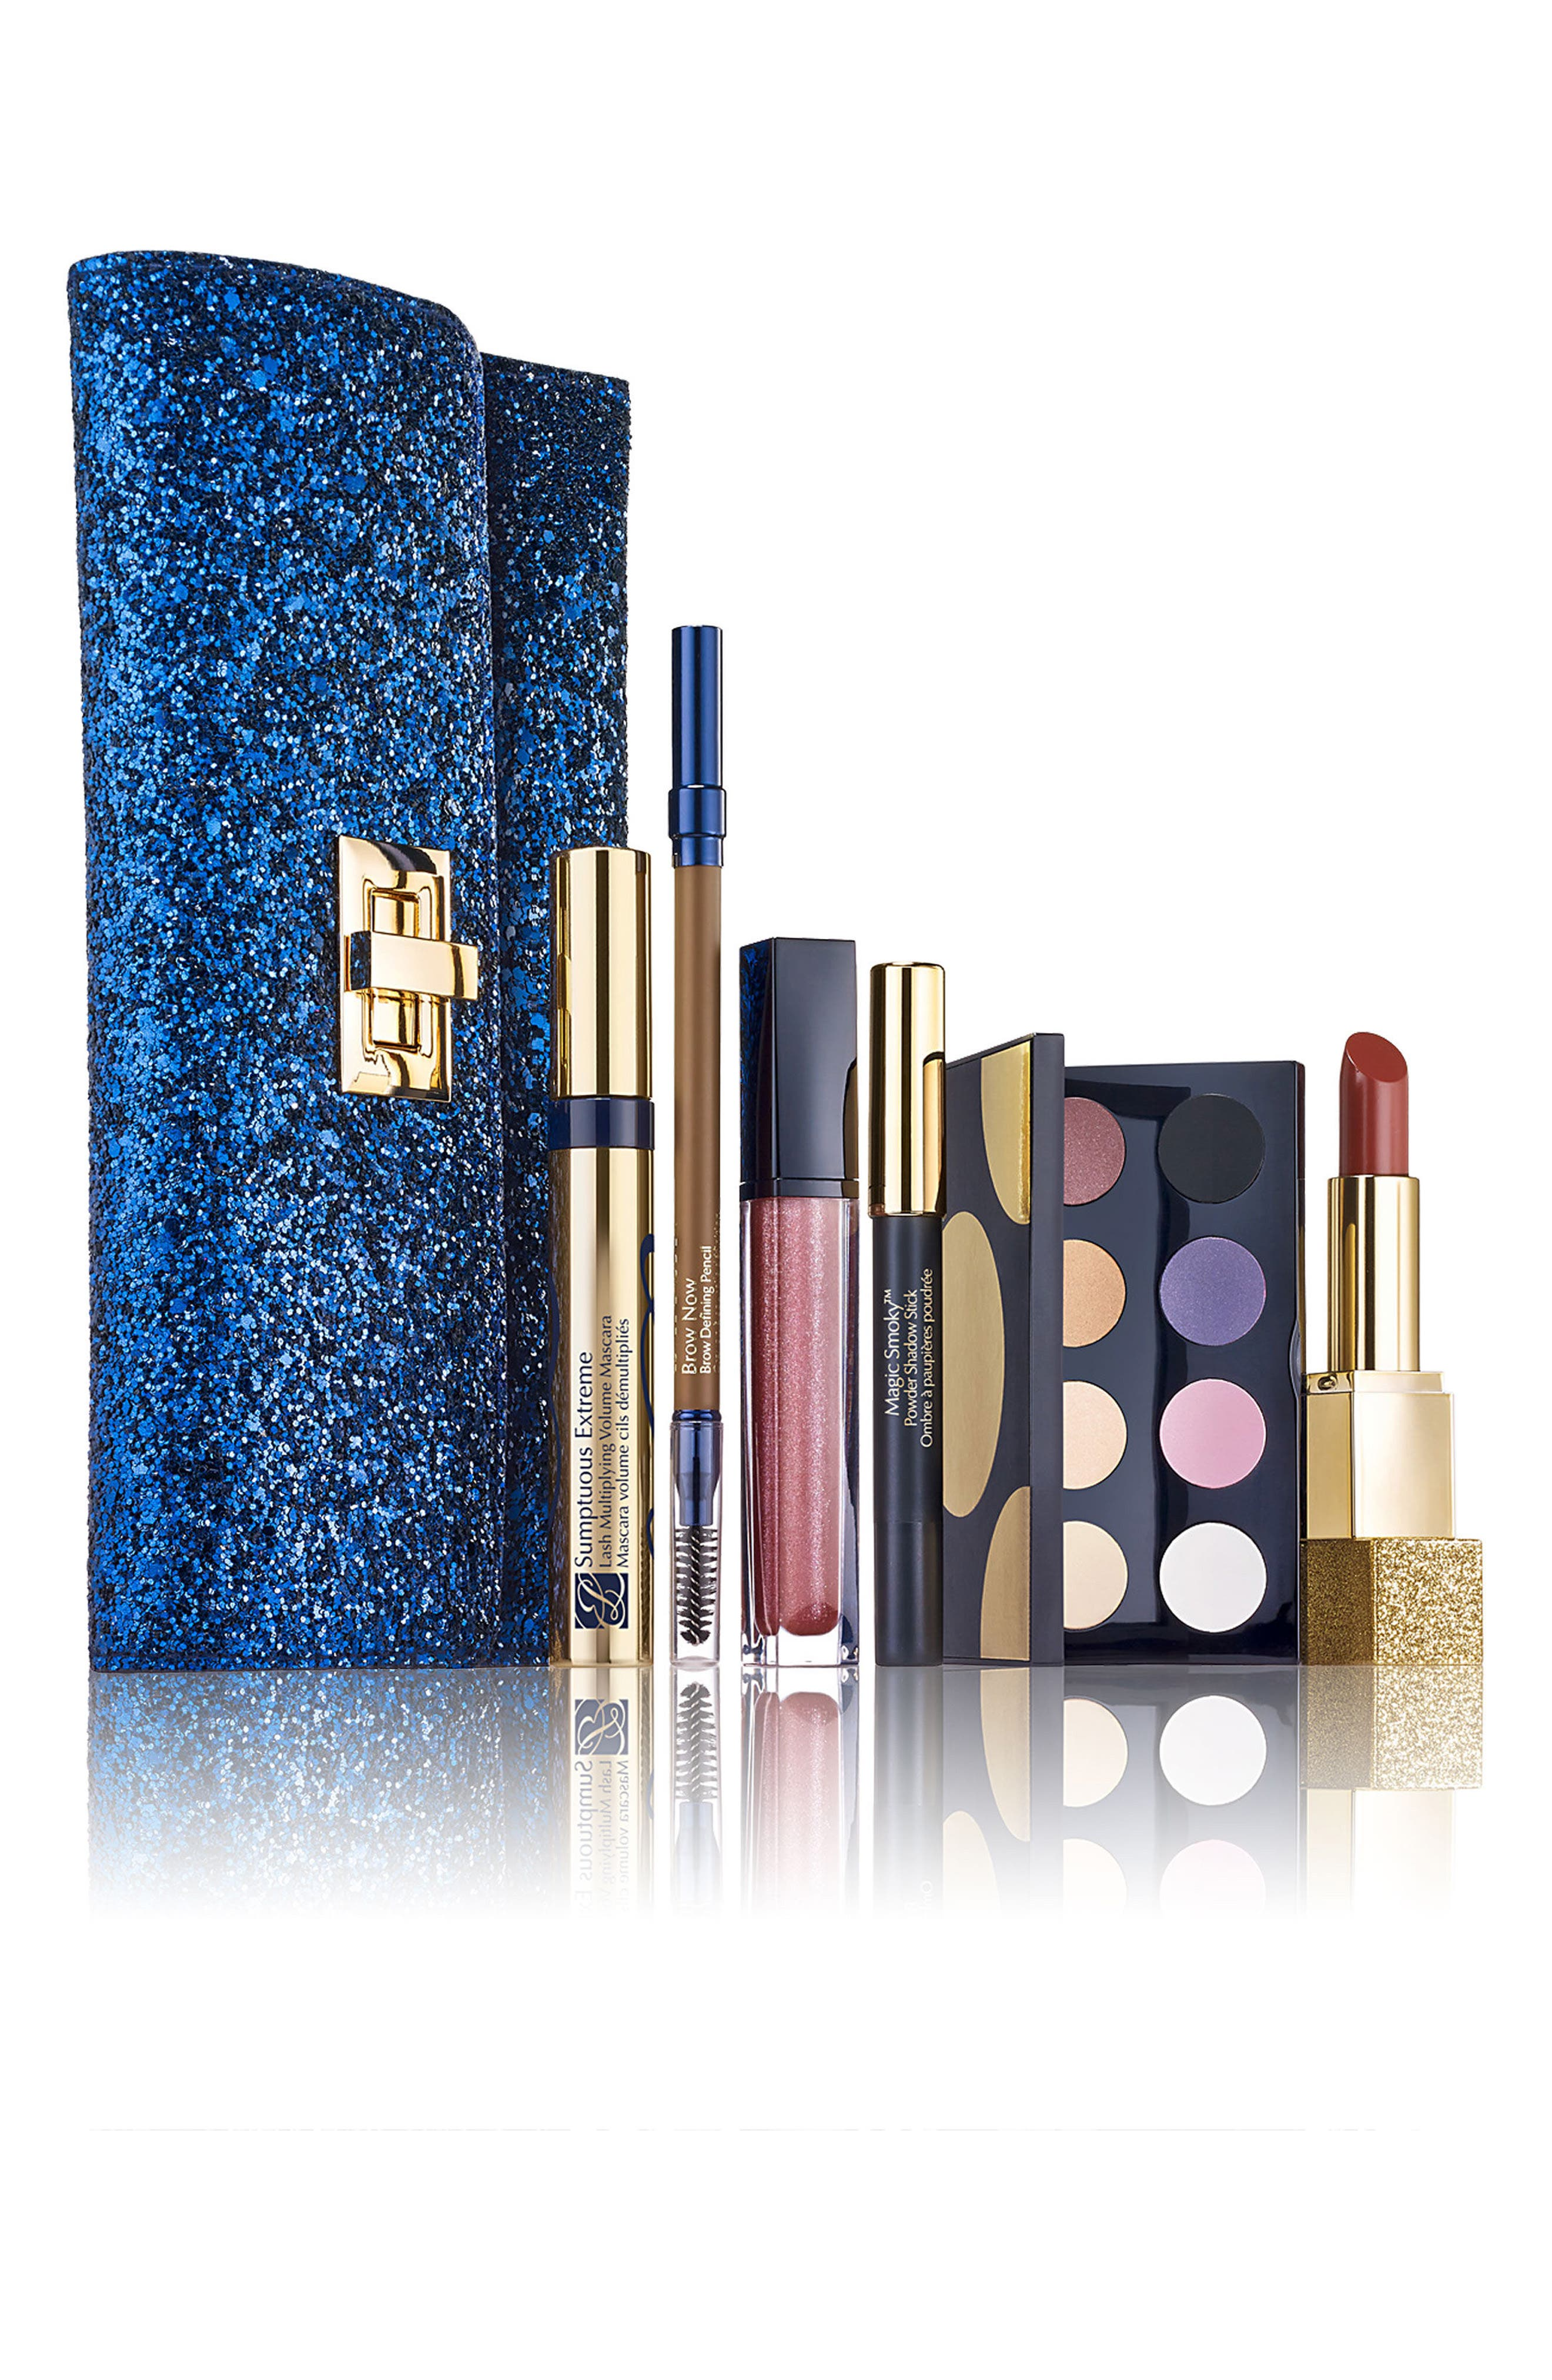 Estée Lauder Party Glamour Collection (Purchase with any Estée Lauder Purchase)